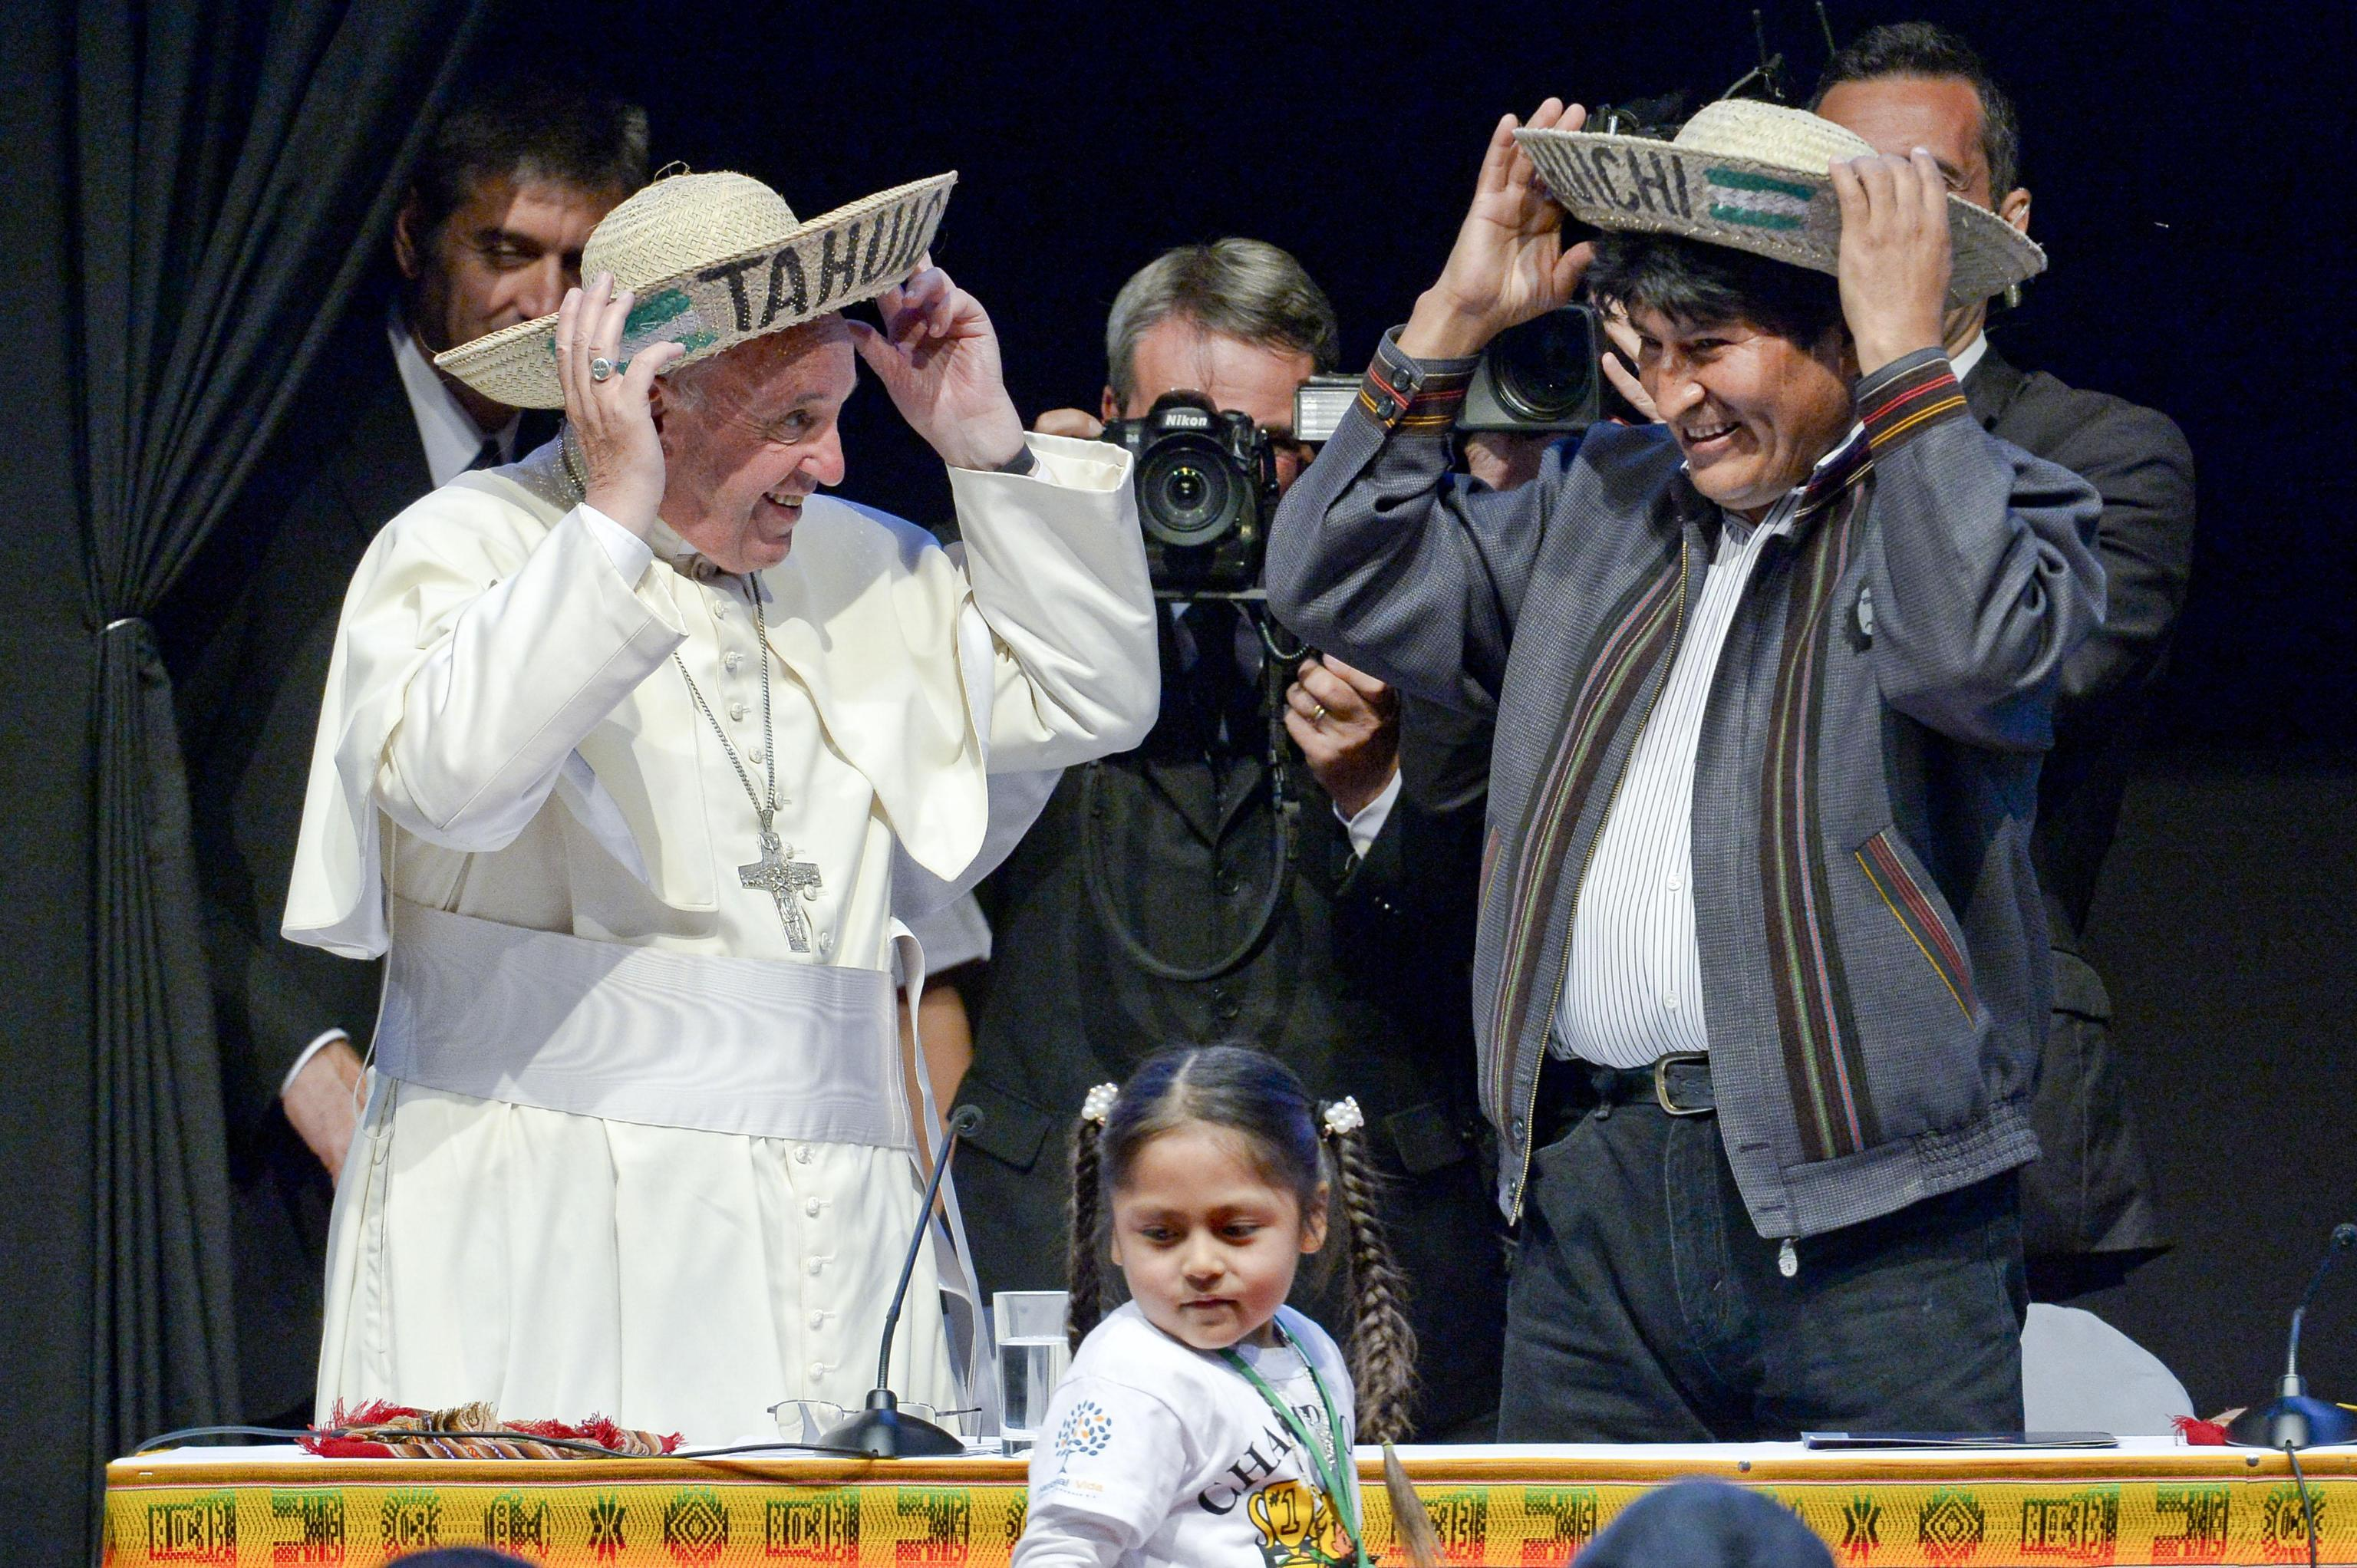 Pope Francis and Bolivian President Evo Morales wearing traditional hats from the region of Santa Cruz